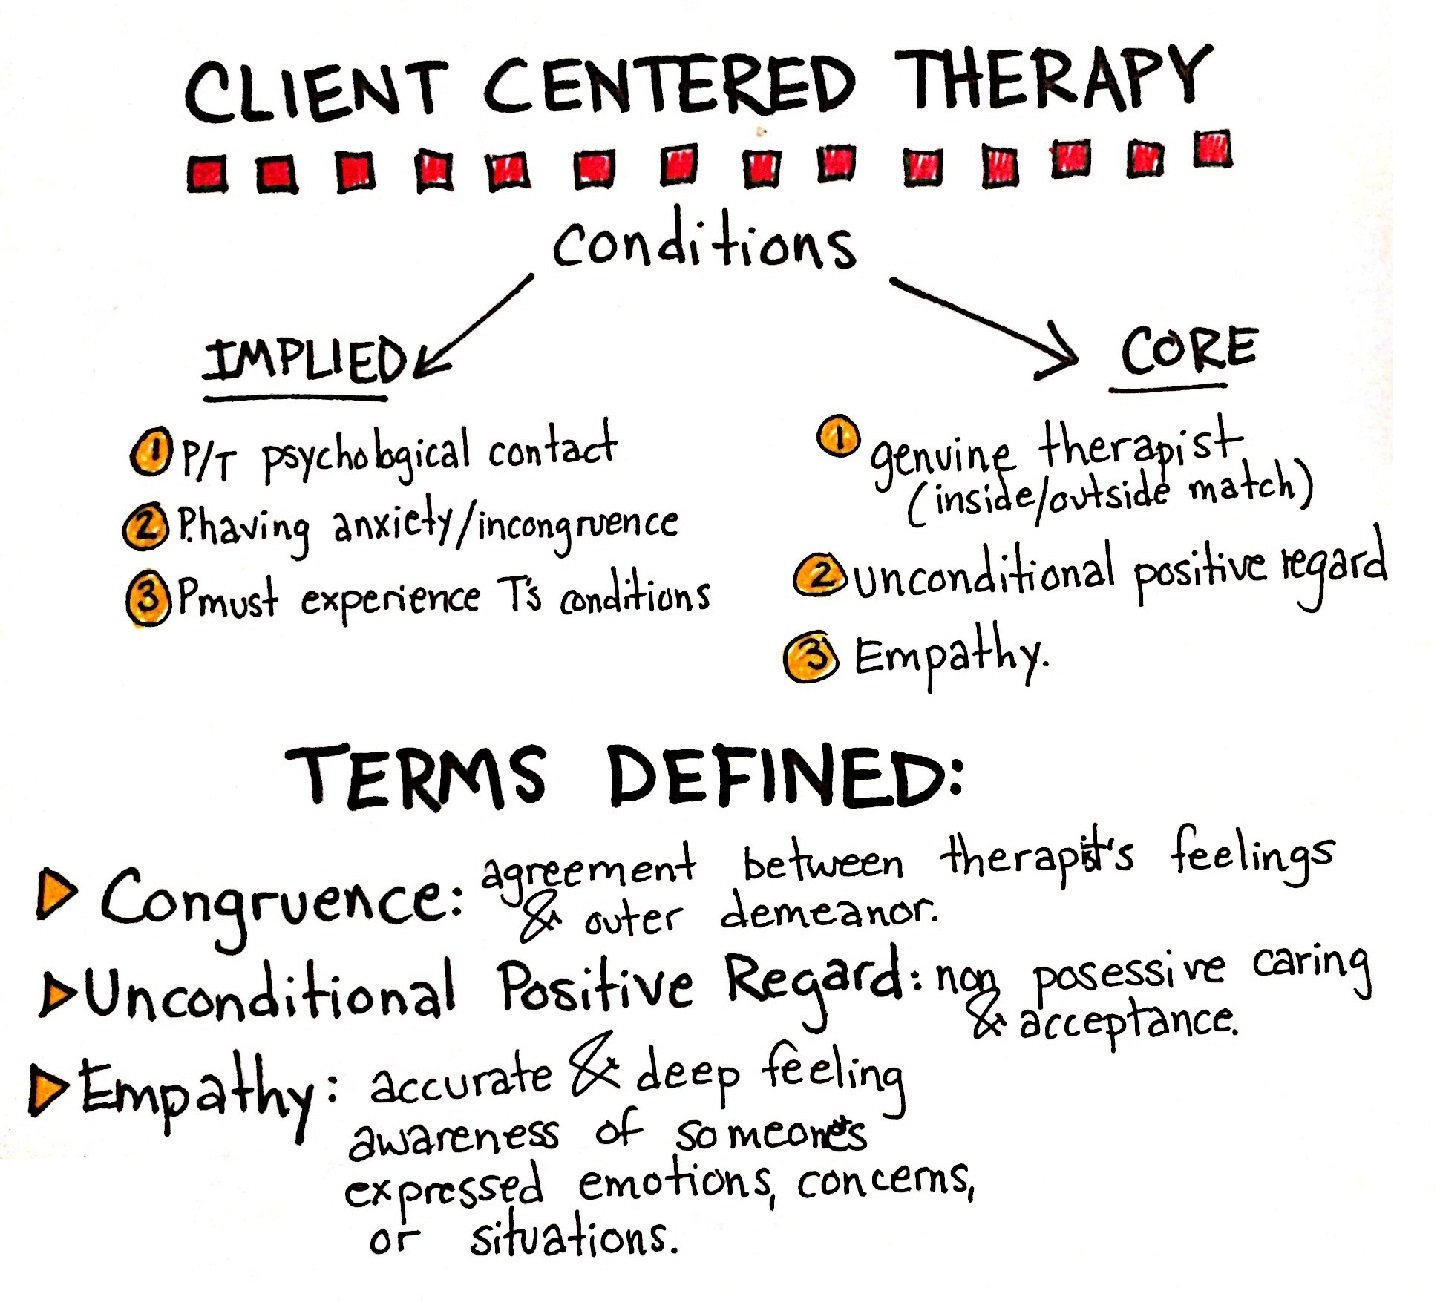 doodle note illustrating conditions of Carl Roger's Client Centered Therapy